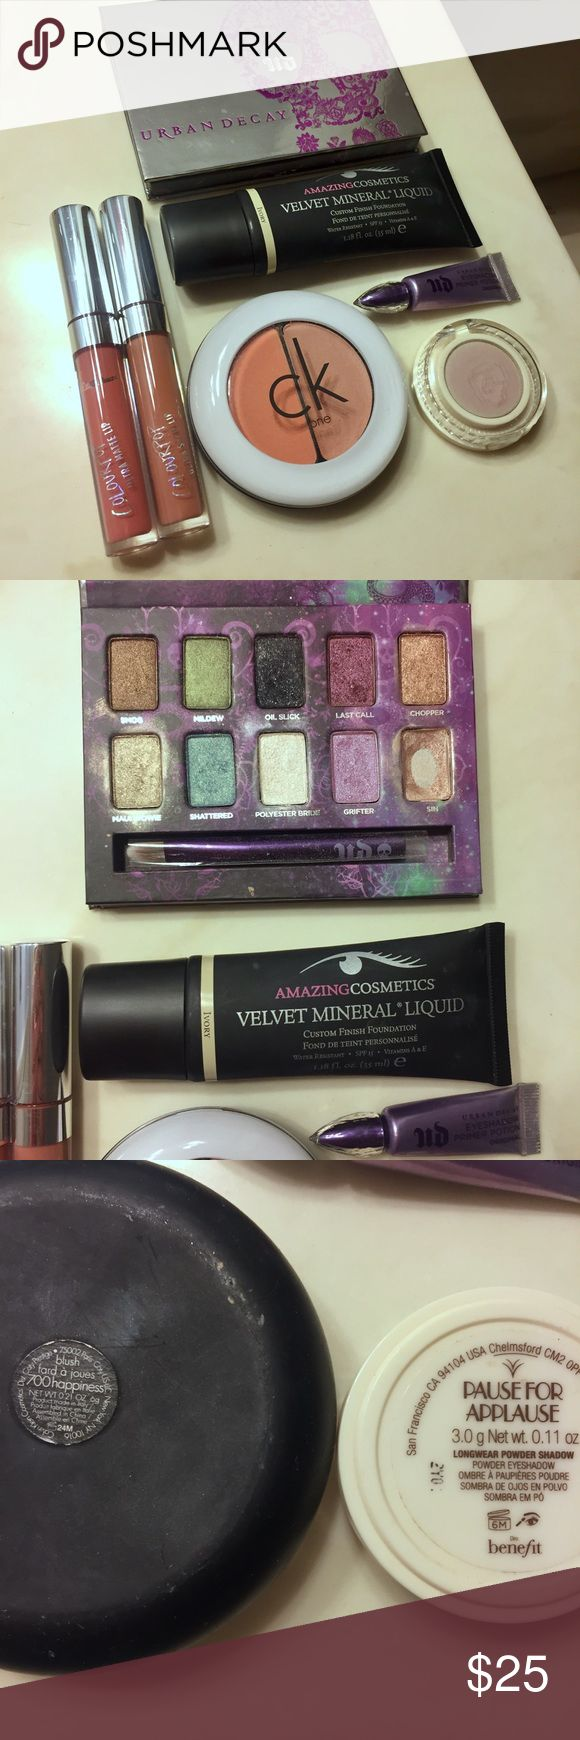 """High-end makeup beauty bundle Open to reasonable offers! ALL have been USED GENTLY but are still full of product. The UD palette is missing the shade """"Sin"""" as pictured. Includes: -Calvin Klein cream/powder blush duo in """"happiness"""" -Benefit eyeshadow single in """"Pause for Applause"""" -Amazing Cosmetics foundation in """"Ivory"""" -Colourpop Ultra Satin Lip in """"Strip"""" -Colourpop Ultra Matte Lip in """"Monday"""" -Urban Decay mini eyeshadow Primer Potion  -Urban Decay eyeshadow palette Colourpop Makeup"""